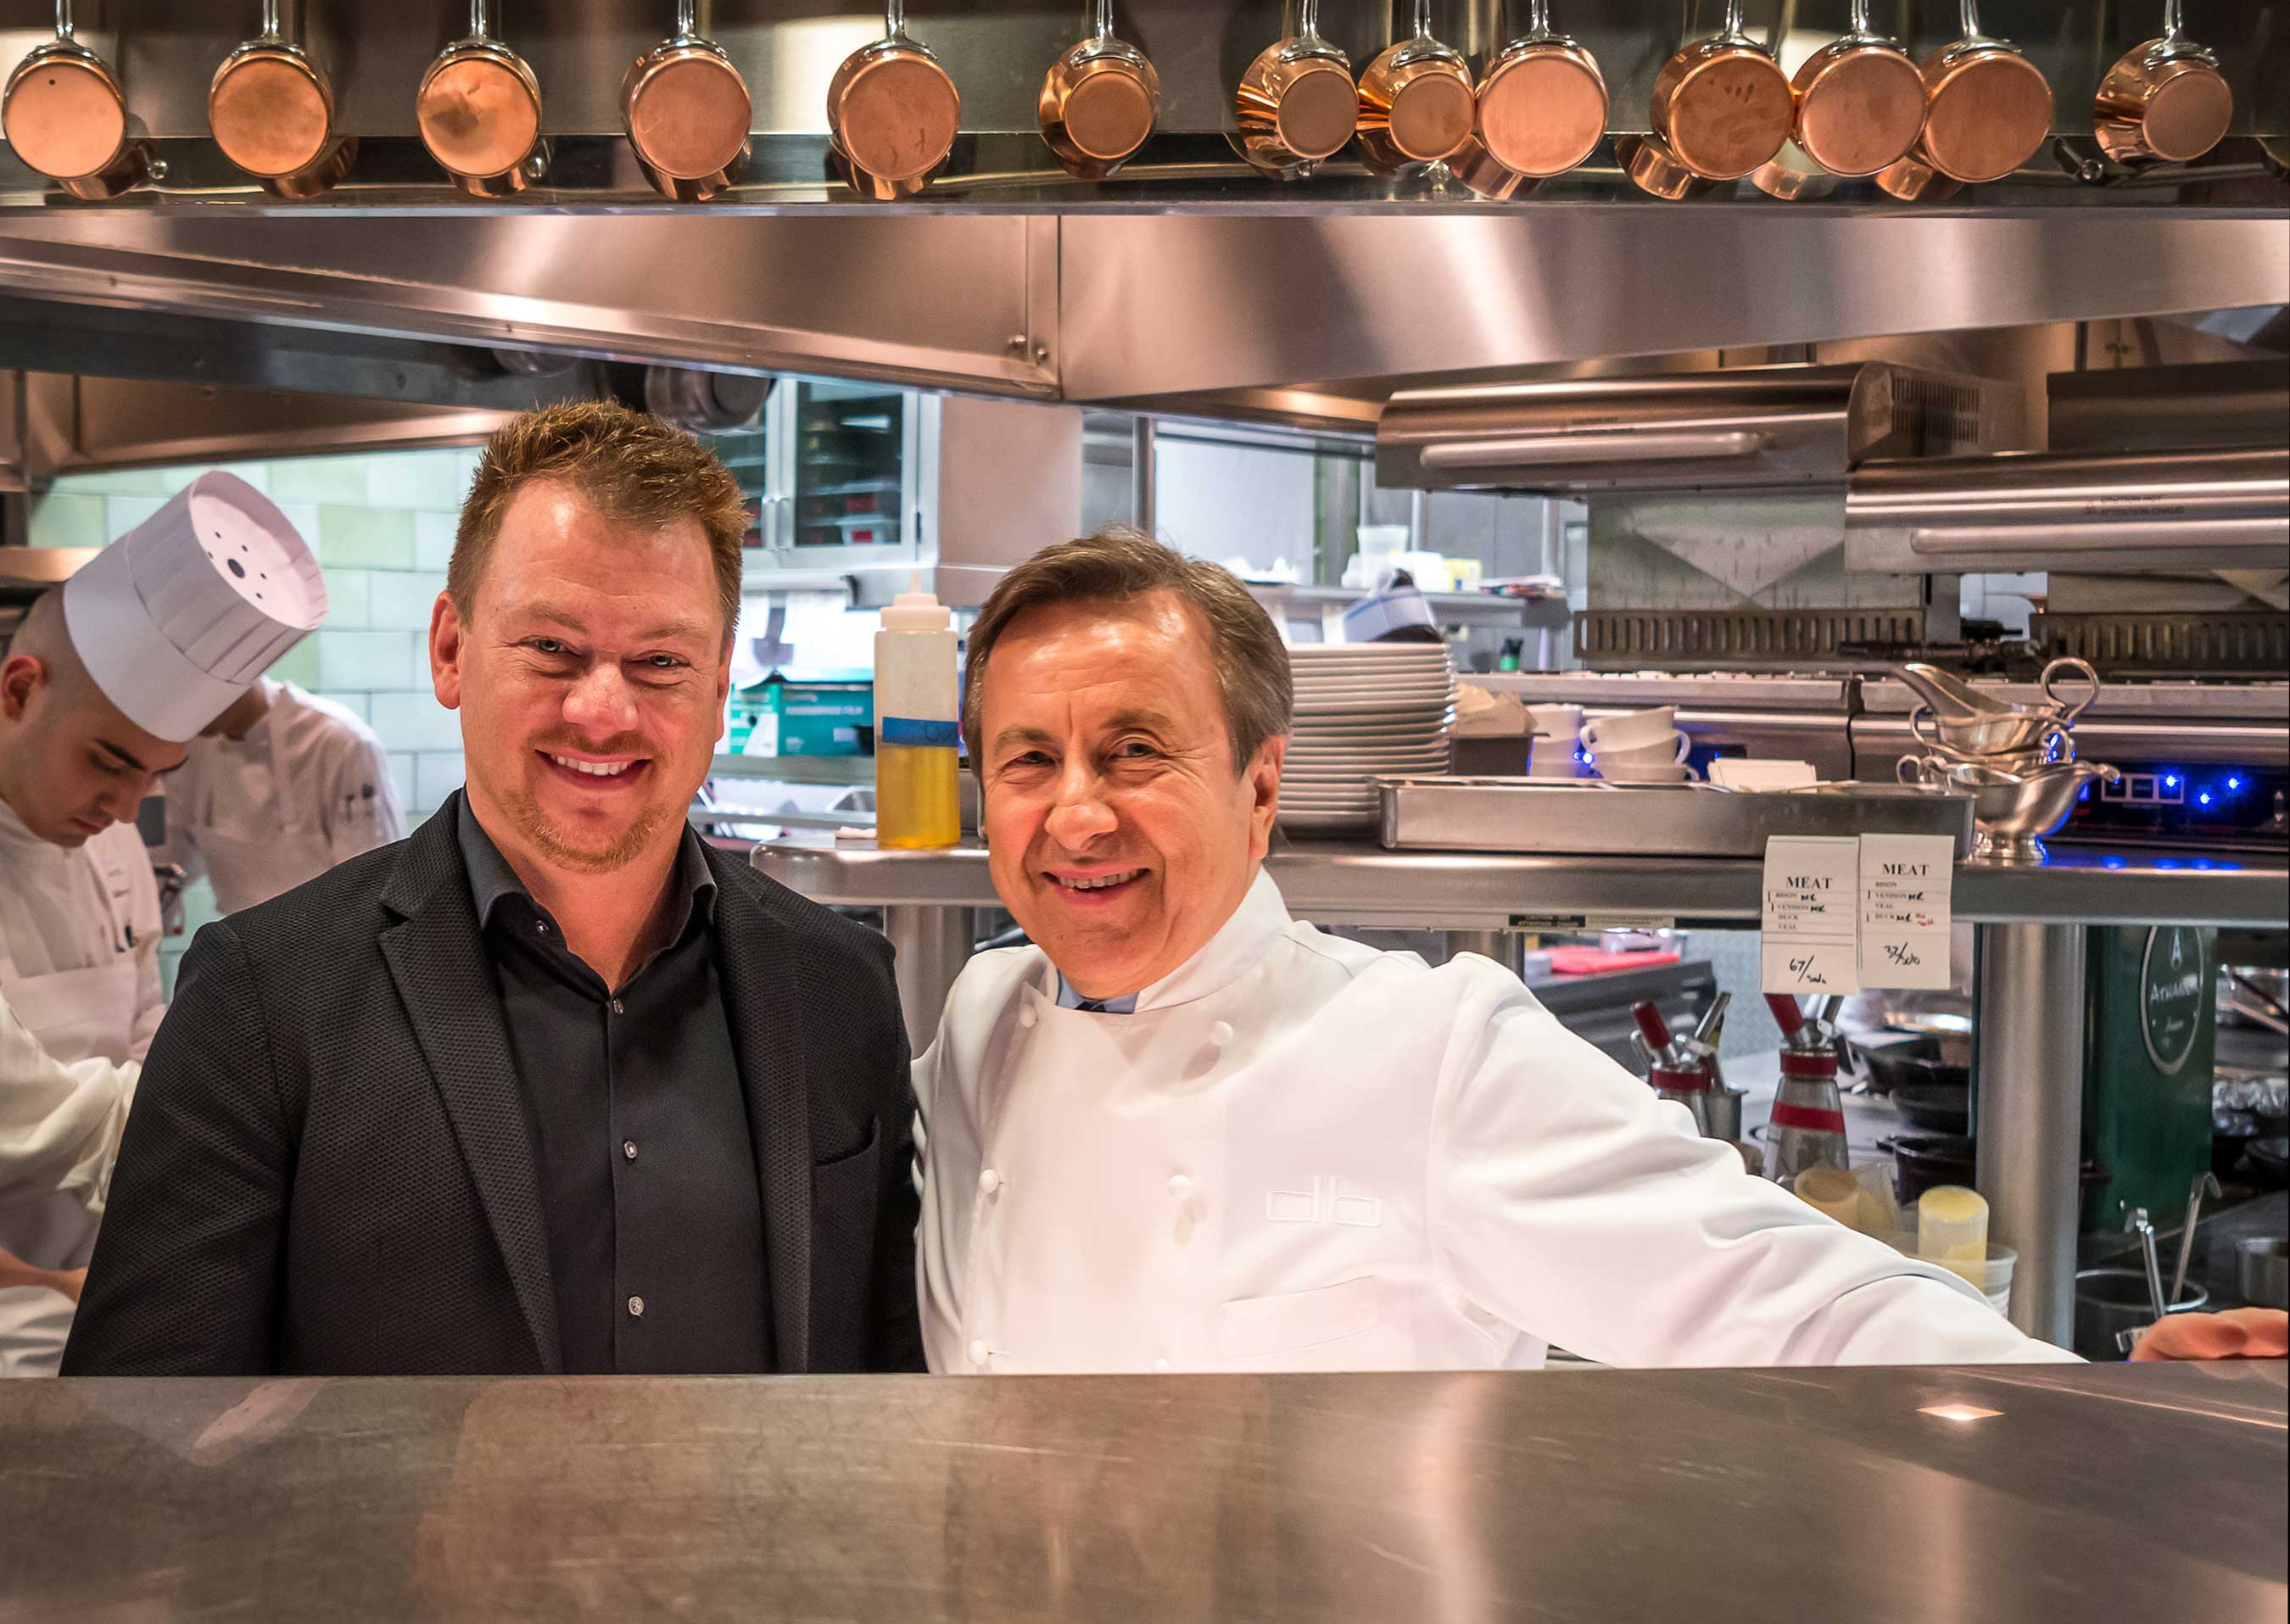 Cornelius Gallagher, Celebrity Cruises, AVP Food and Beverage Operations, with Chef Daniel Boulud at Daniel